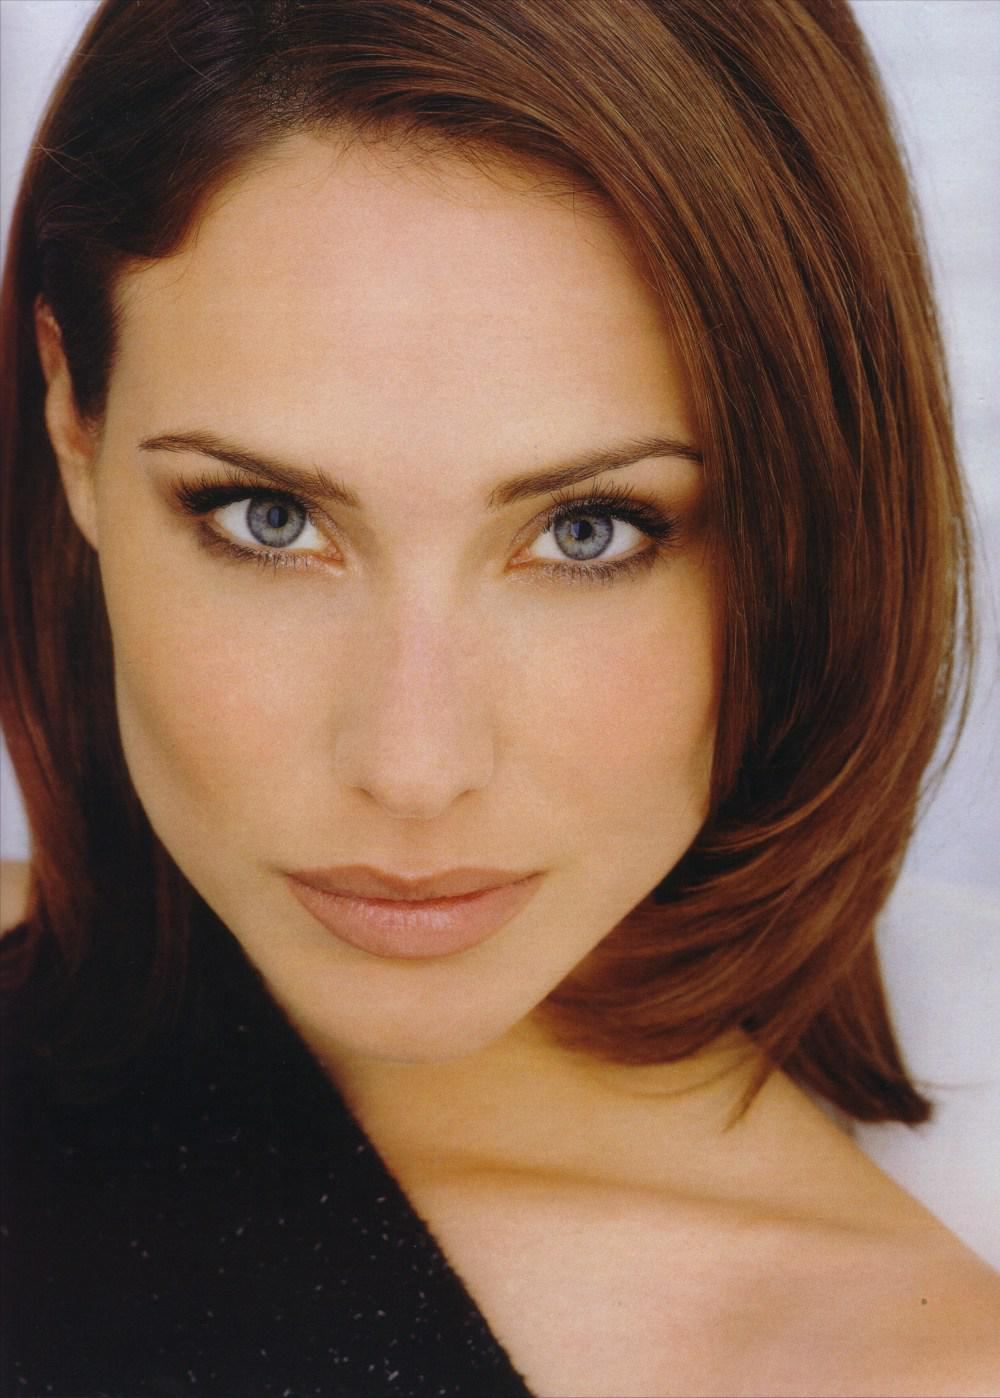 Claire forlani the diplomat - 3 part 5